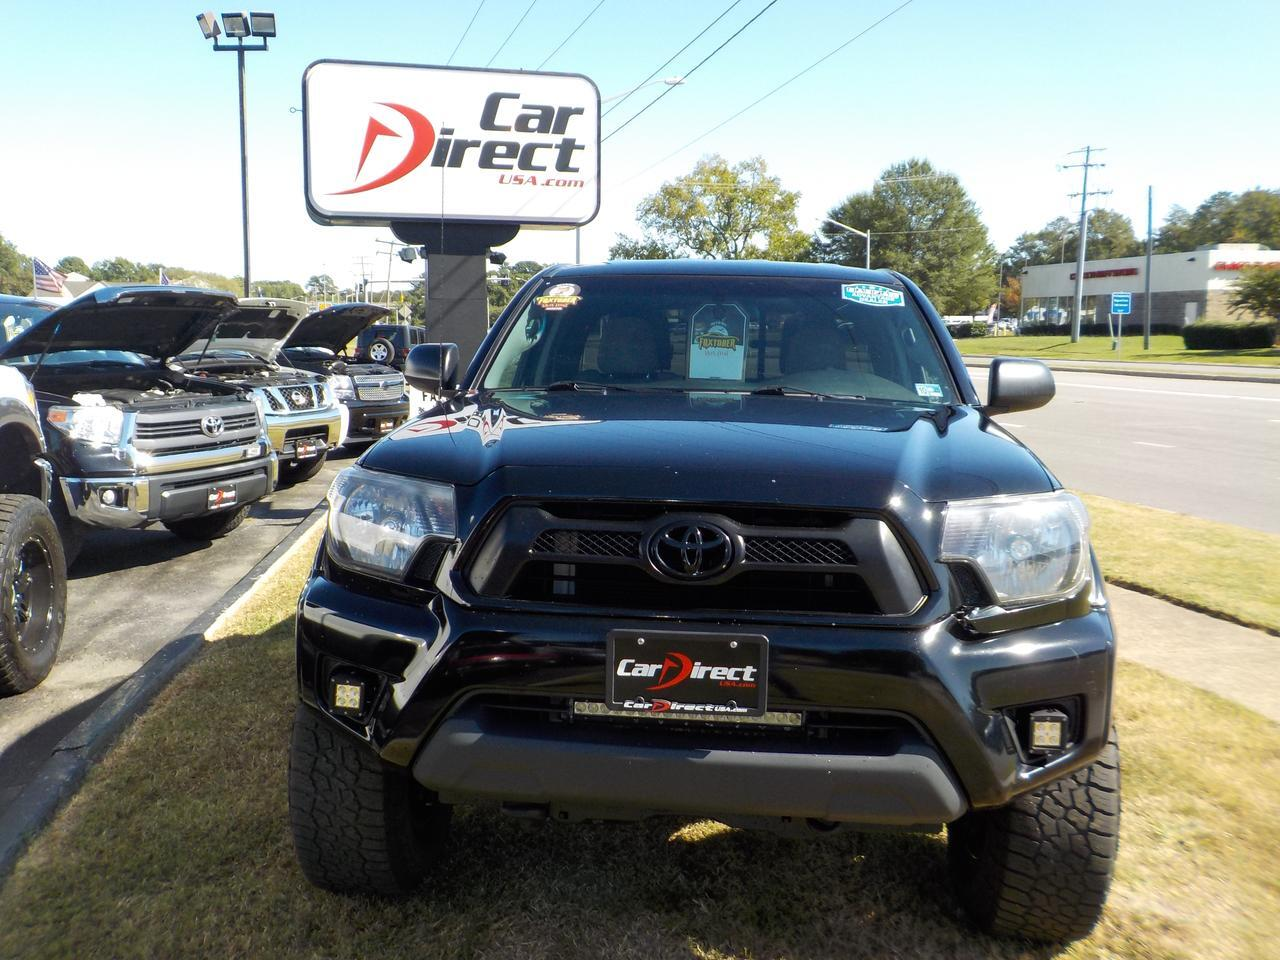 2015 TOYOTA TACOMA TRD PRO OFF ROAD 4X4, ONE OWNER, CUSTOM HELO RIMS, BLUETOOTH, FENDER FLARES! Virginia Beach VA